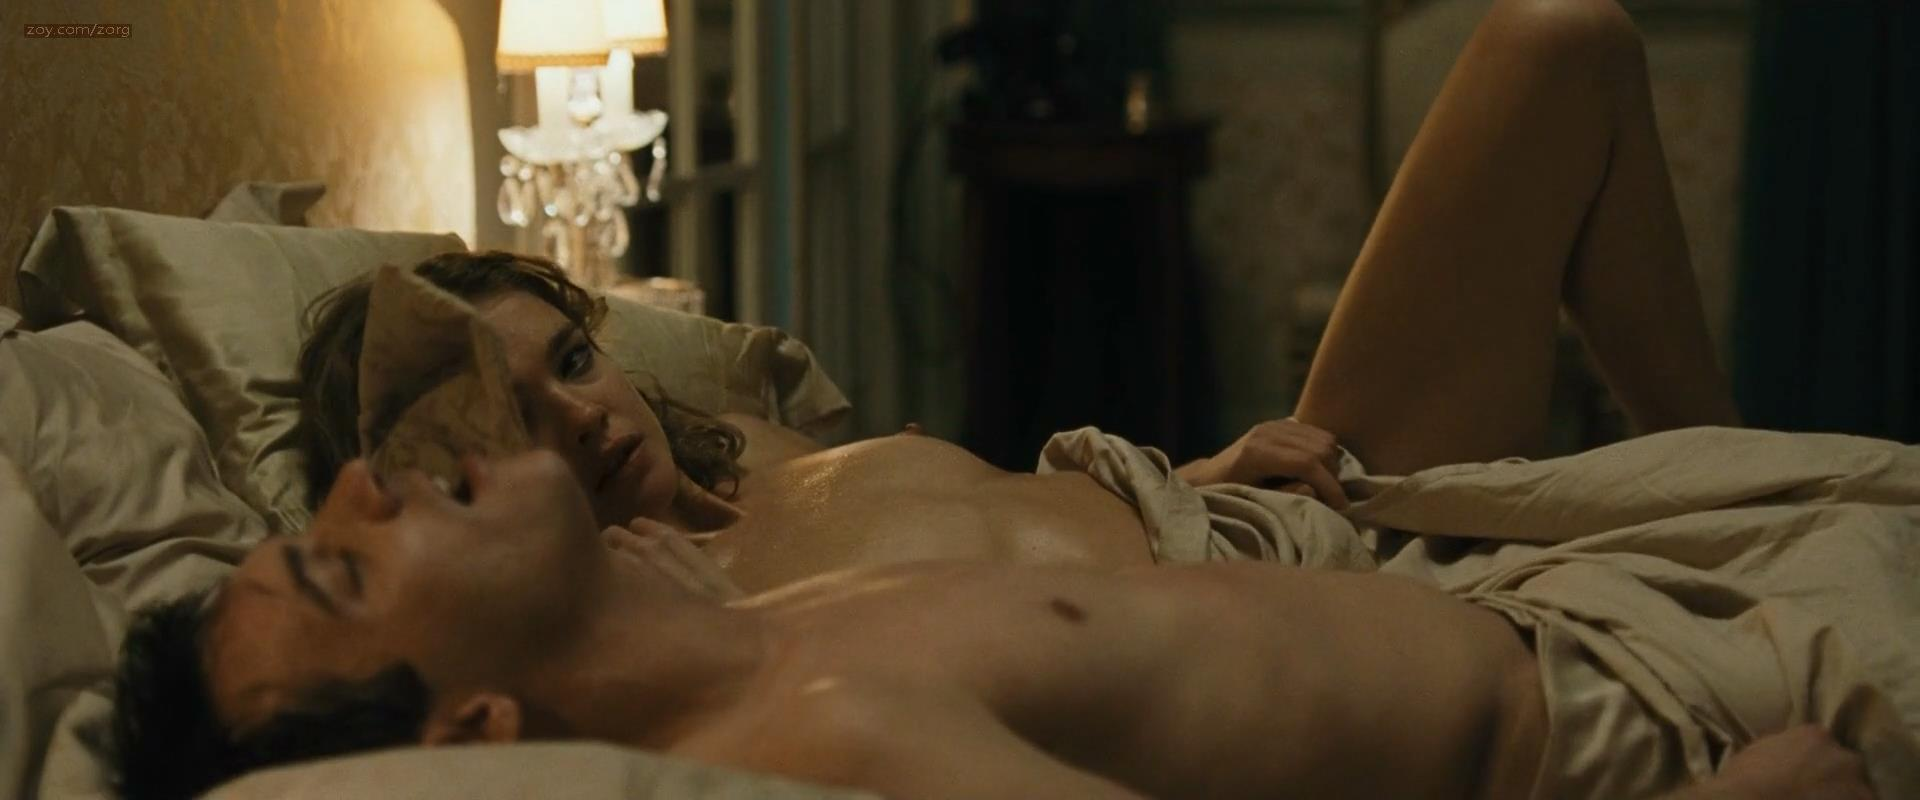 Natalia Vodianova nude topless butt and sex - Belle du Seigneur (2012) hd1080p